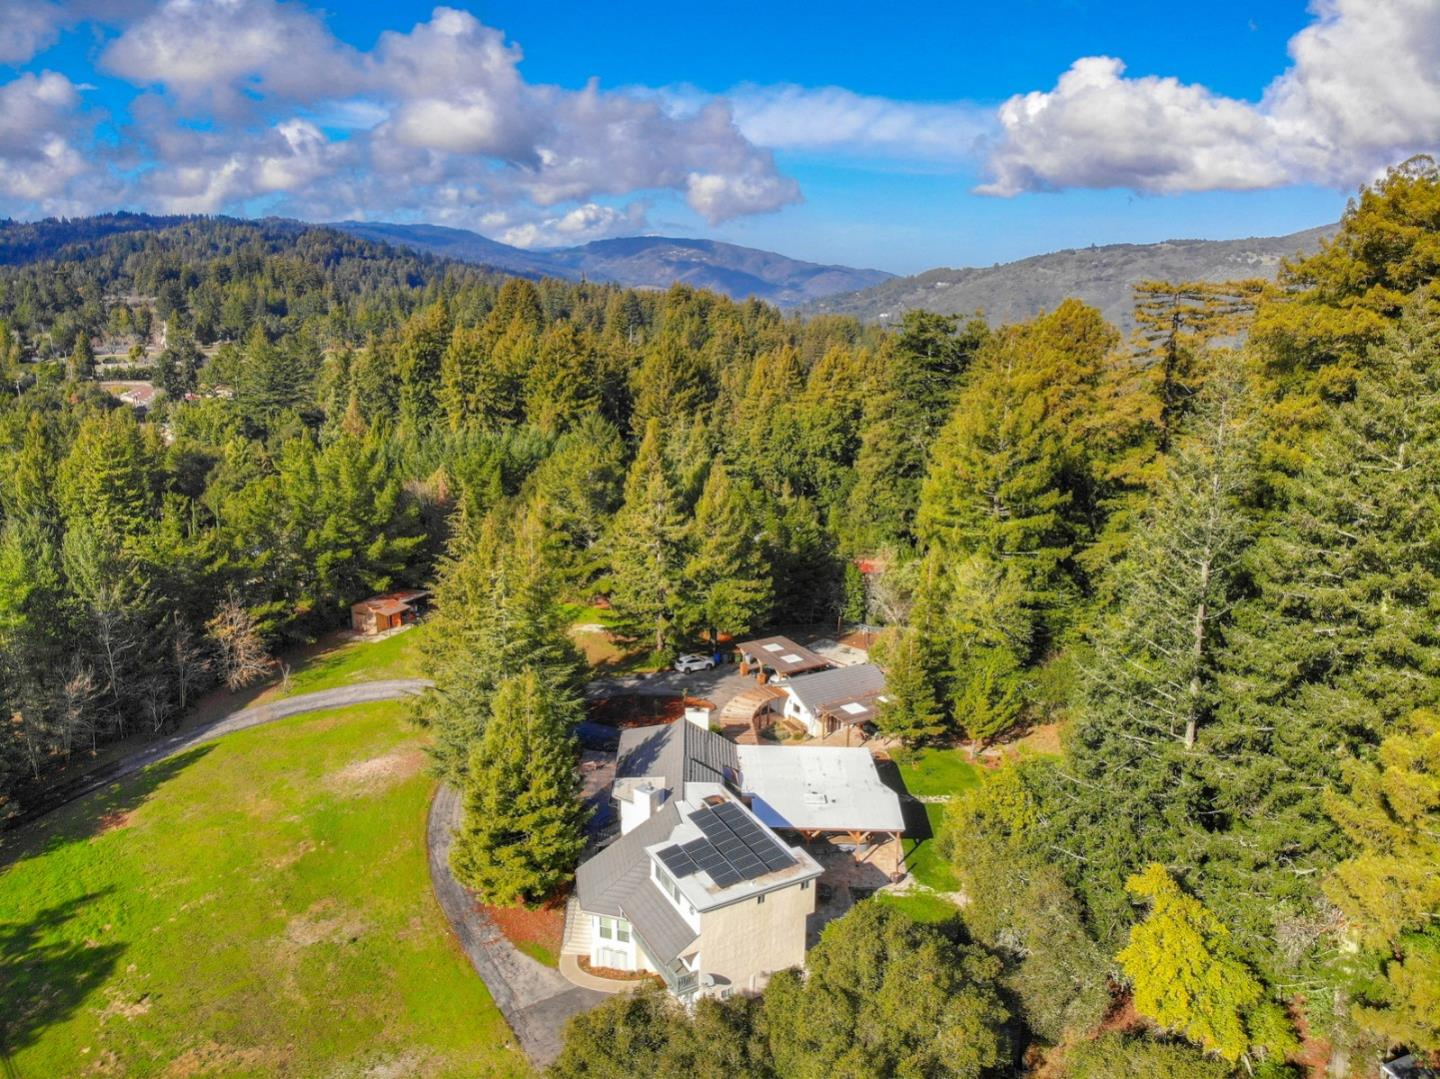 Property for sale at 23457 Summit RD, Los Gatos,  CA 95033